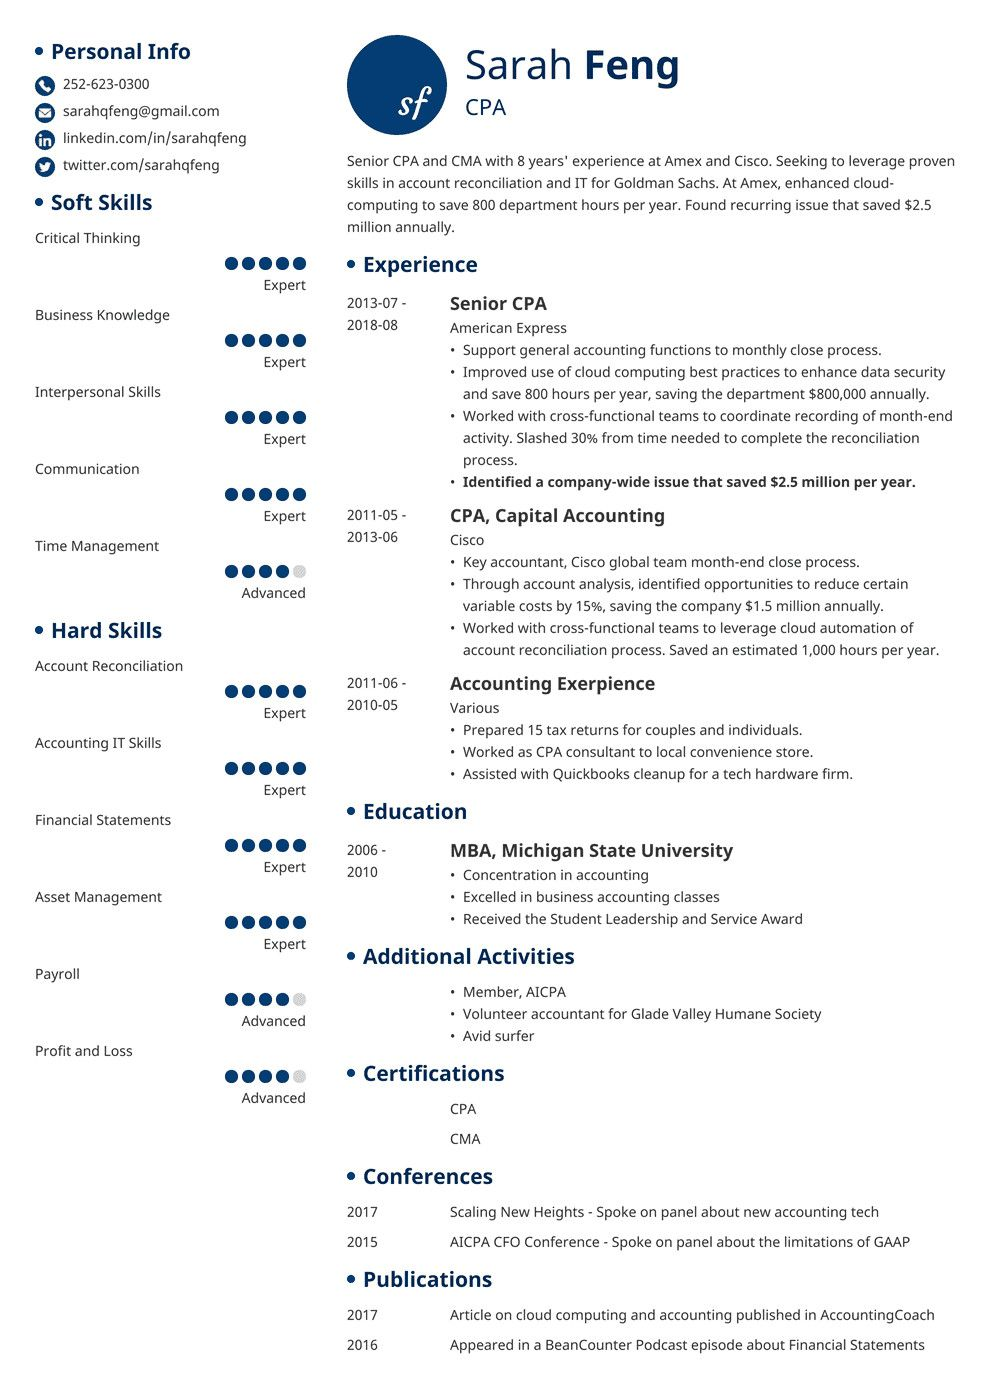 32 Elegant Accounting Resume Examples 2017 in 2020